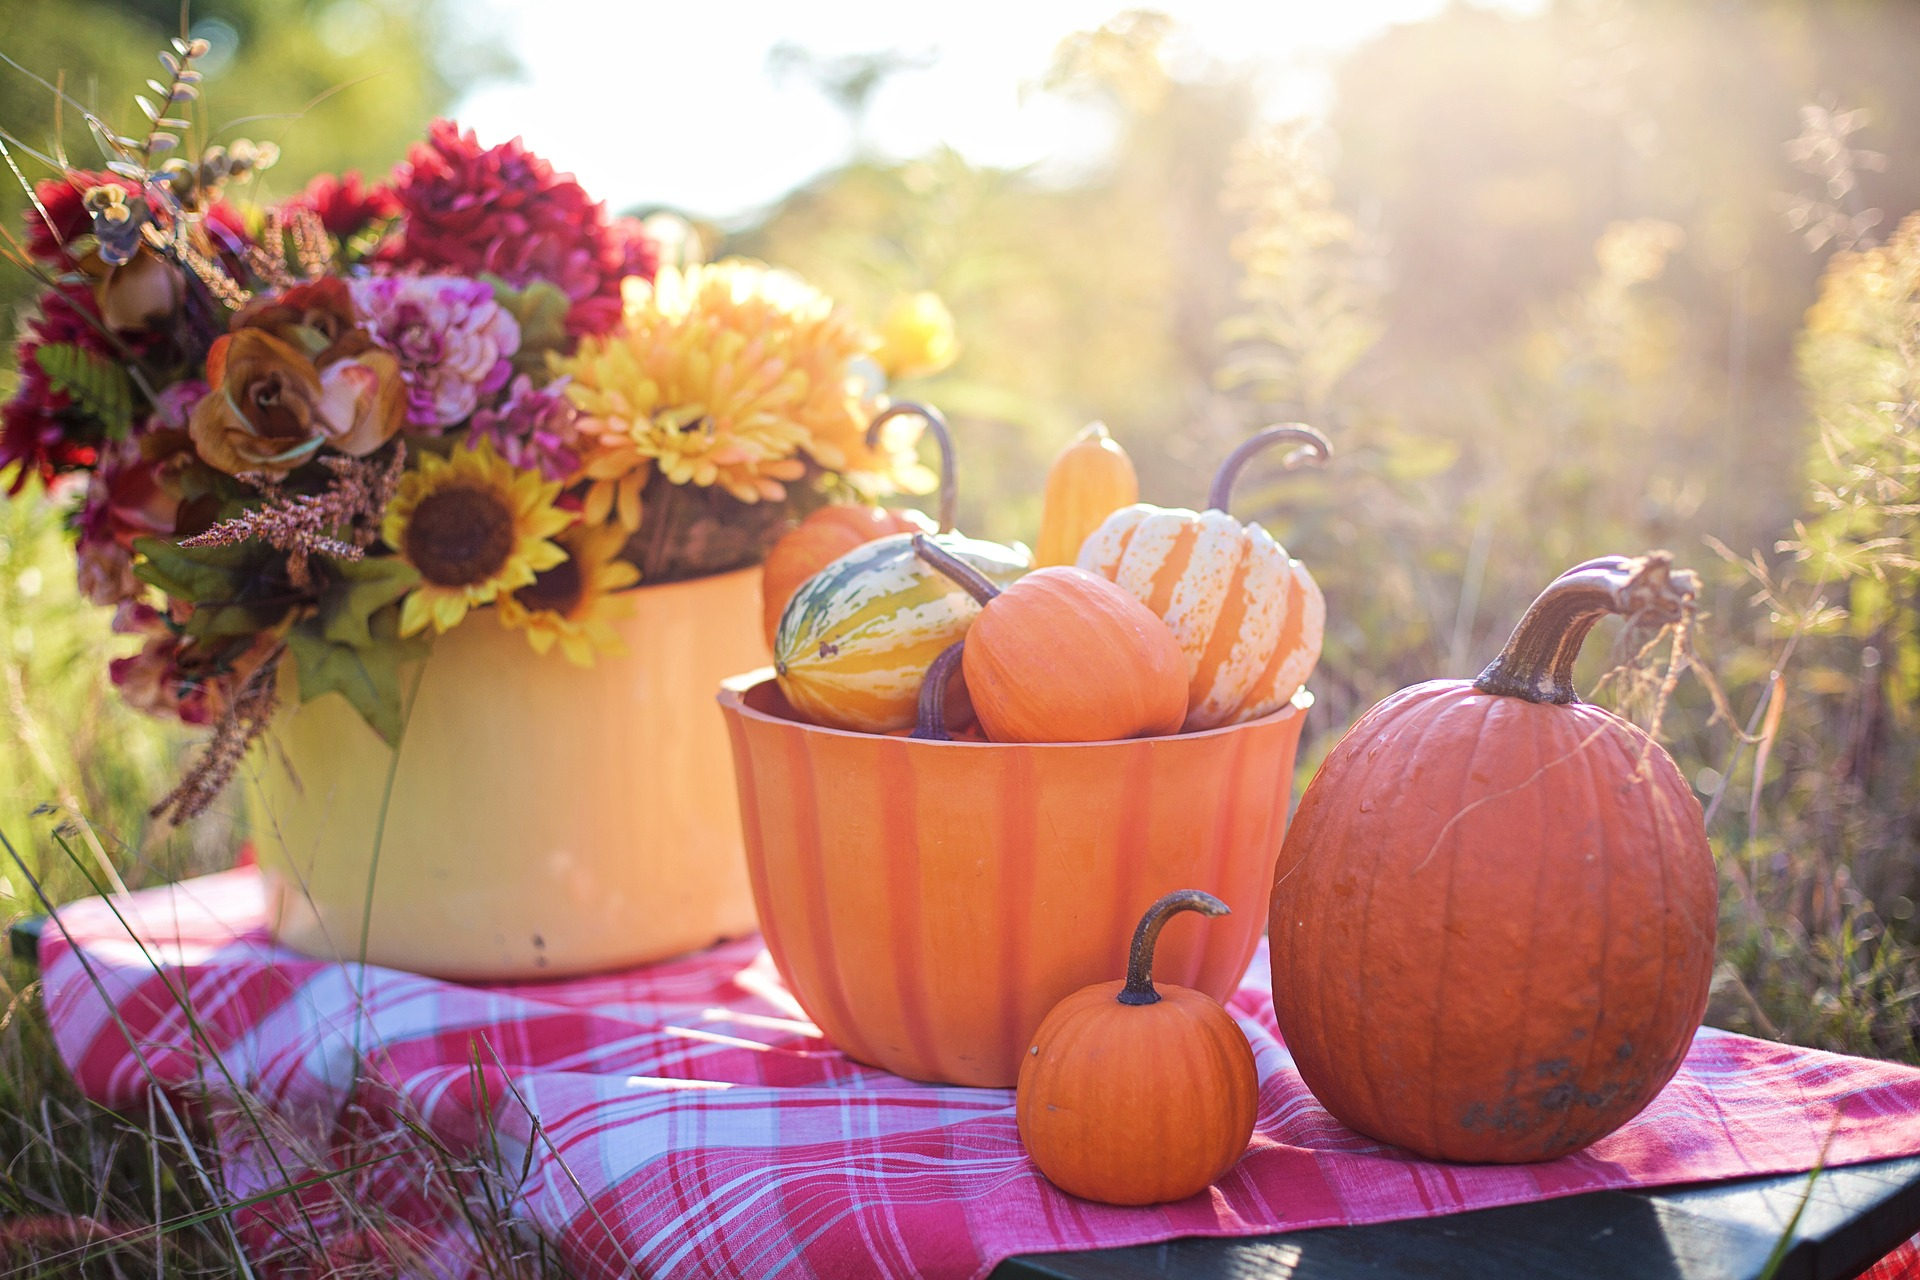 <p>Pumpkins steal the spotlight as the most picture-perfect winter squash, but they can do so much more than decorate your coffee table or wear a toothless grin on your front stoop. They deserve just as much love in the kitchen, where they're often relegated to a basic pumpkin pie that only comes out once a year. Chefs around D.C. are thinking outside the pie dish with creative recipes that feature pumpkin all season long. Instead of letting that big orange gourd rot on your porch, try whipping up one of these fall favorites. (Image: File photo)</p>